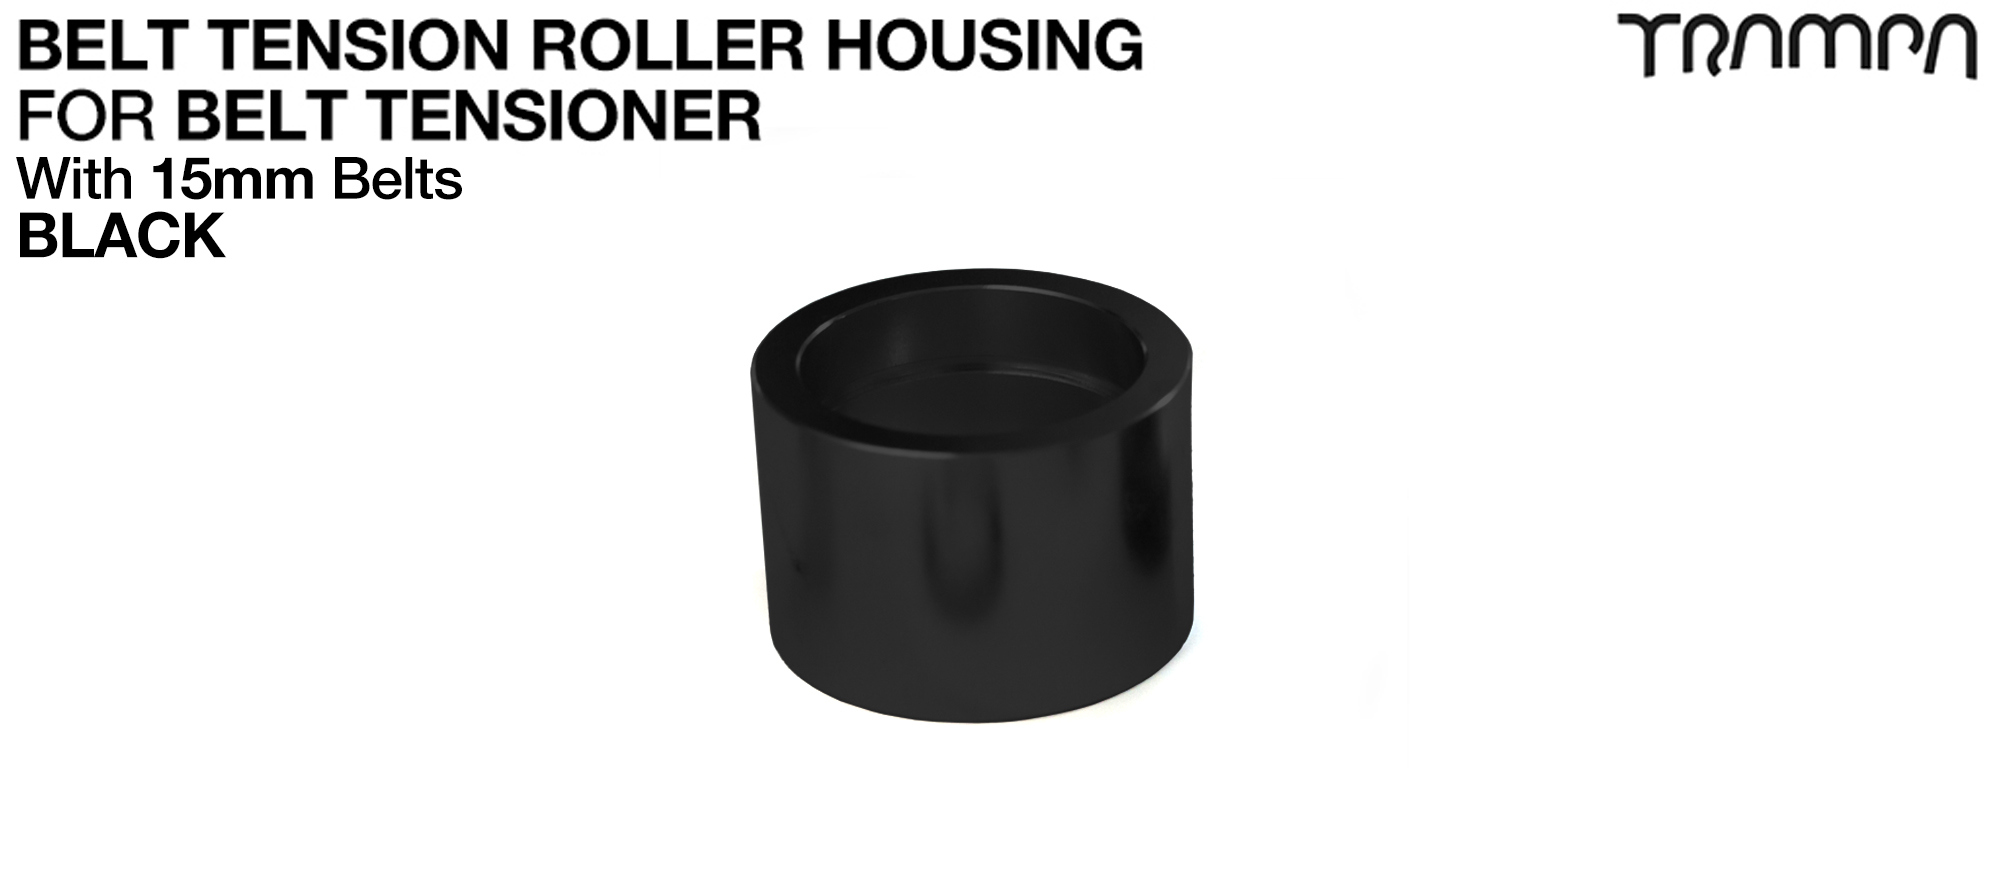 Belt Tension Roller Housing for 15mm Belts - BLACK